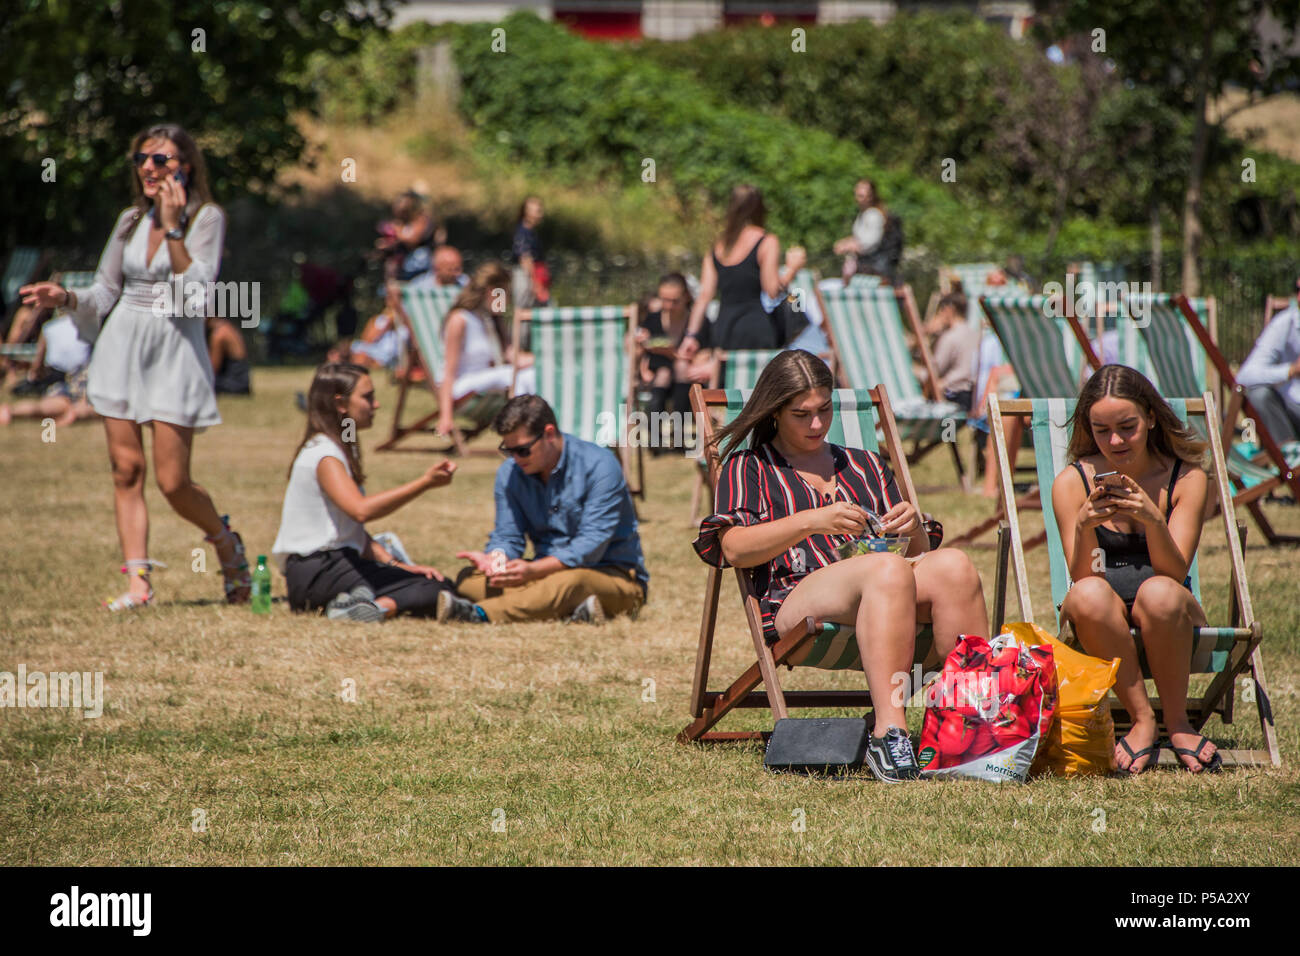 Green Park, London. 26th Jun, 2018. UK Weather: People, of all ages and sexes, enjoy their lunch break in the hot and sunny conditions in Green Park.. Credit: Guy Bell/Alamy Live News Stock Photo